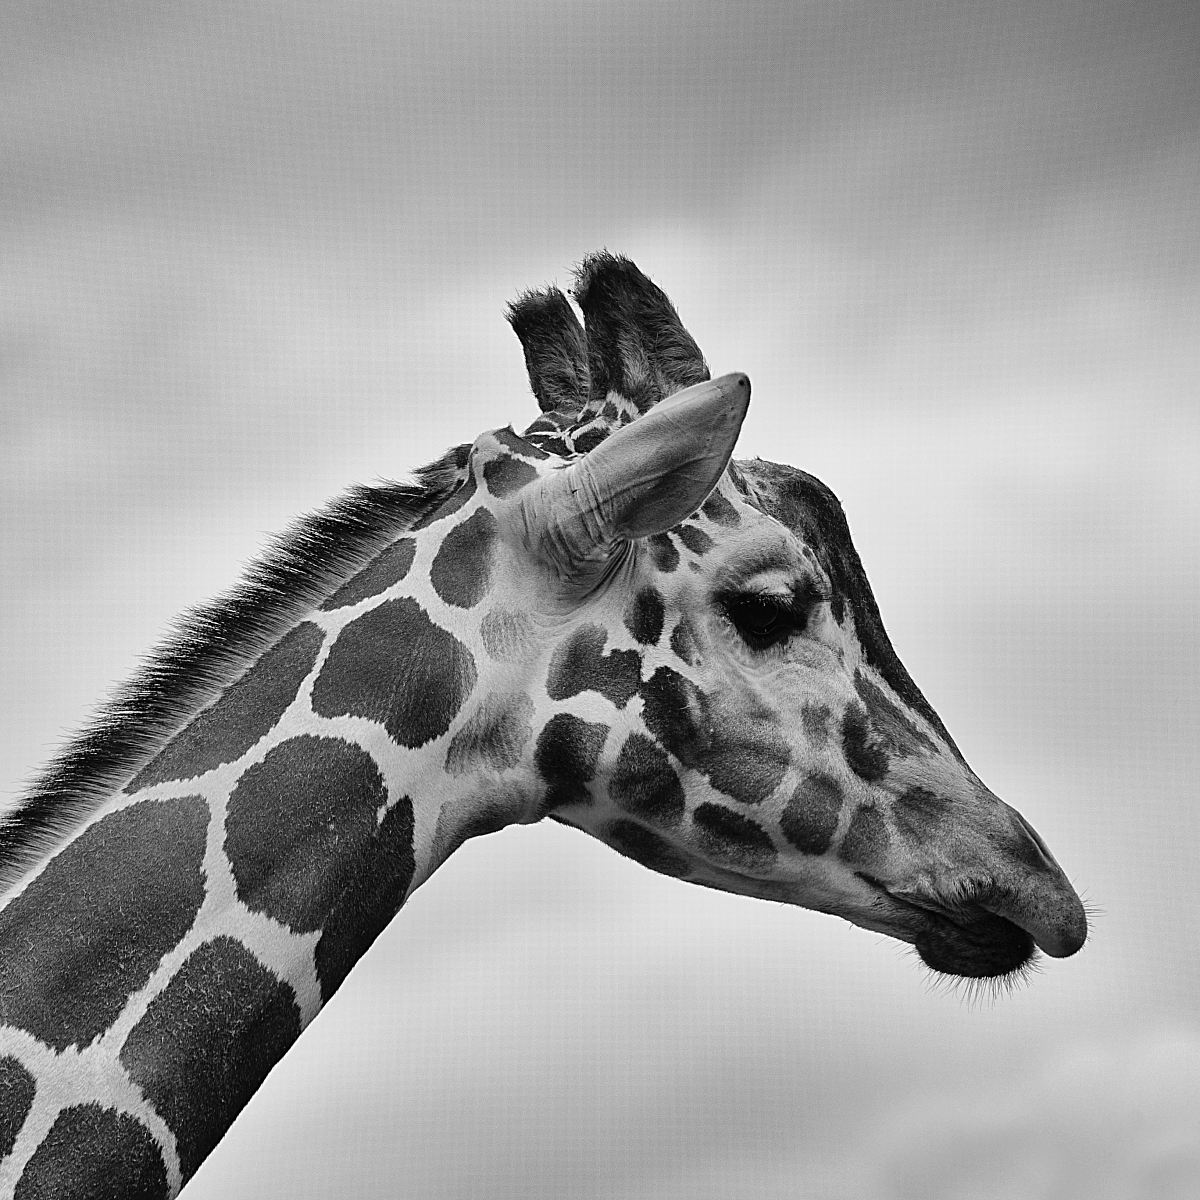 stock photos free  of grayscale photography of giraffe